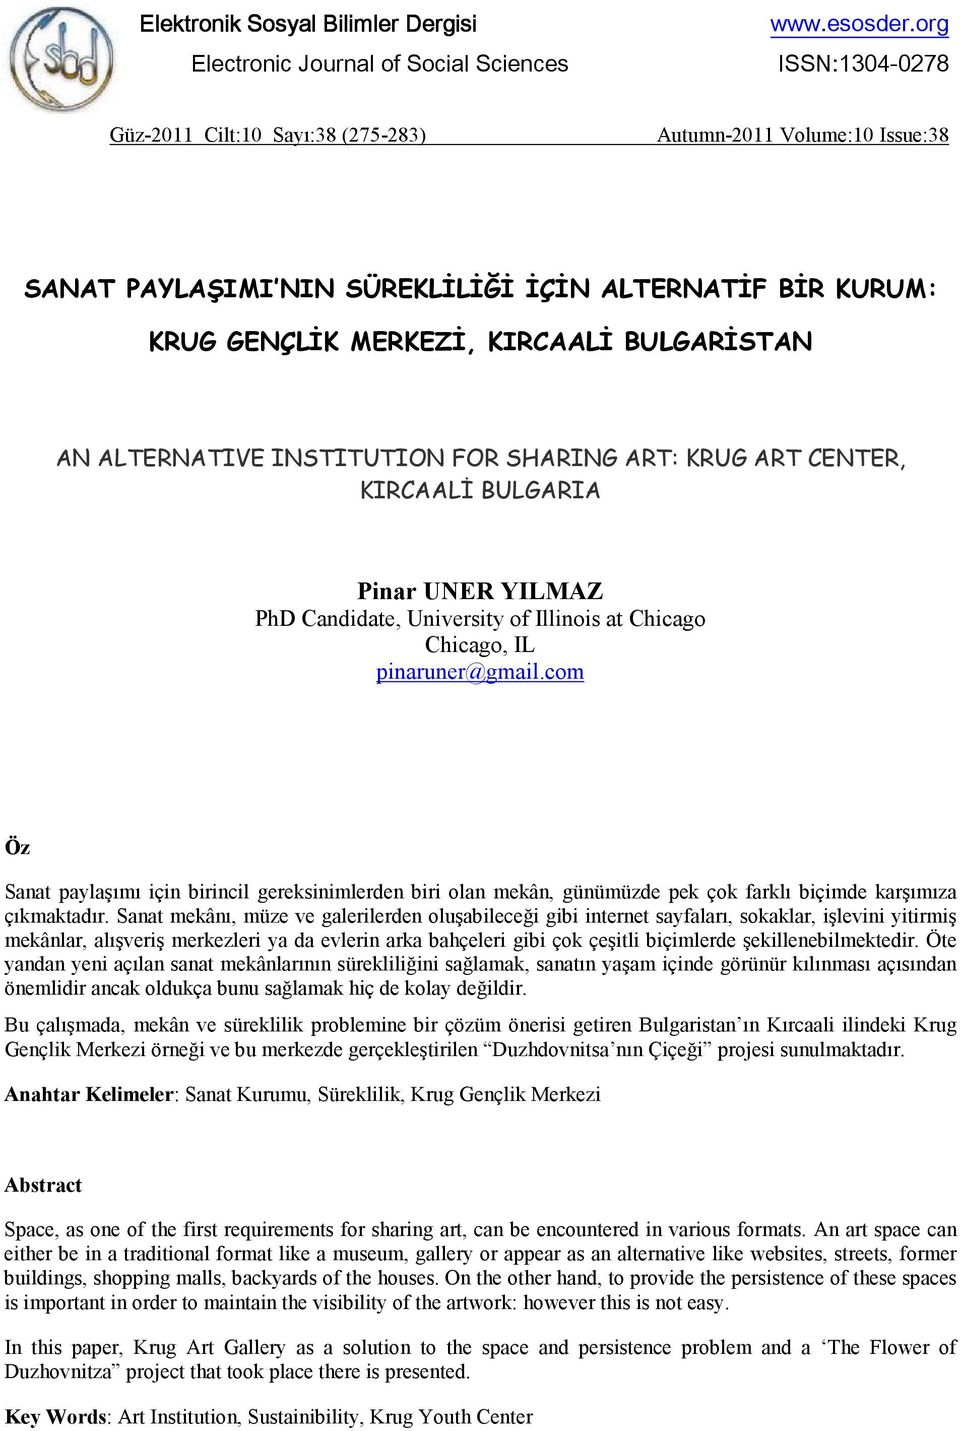 ALTERNATIVE INSTITUTION FOR SHARING ART: KRUG ART CENTER, KIRCAALİ BULGARIA Pinar UNER YILMAZ PhD Candidate, University of Illinois at Chicago Chicago, IL pinaruner@gmail.